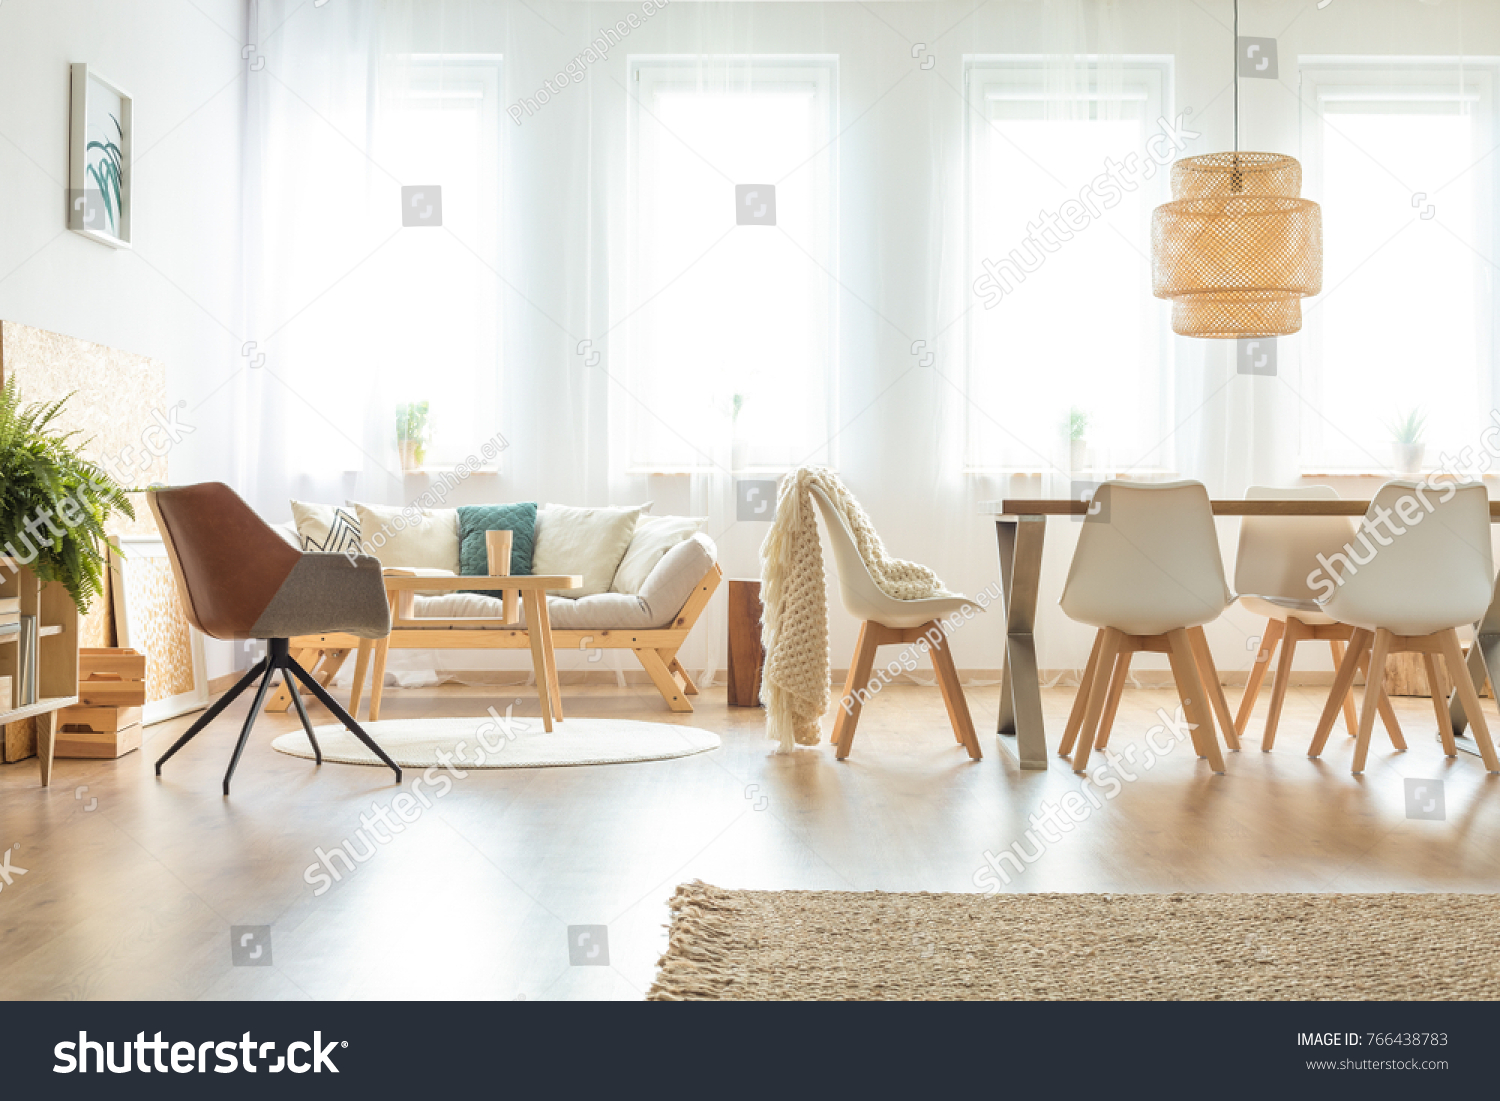 Vintage Chair And Sofa In Multifunctional Dining Room With Wooden Table  Under Lamp